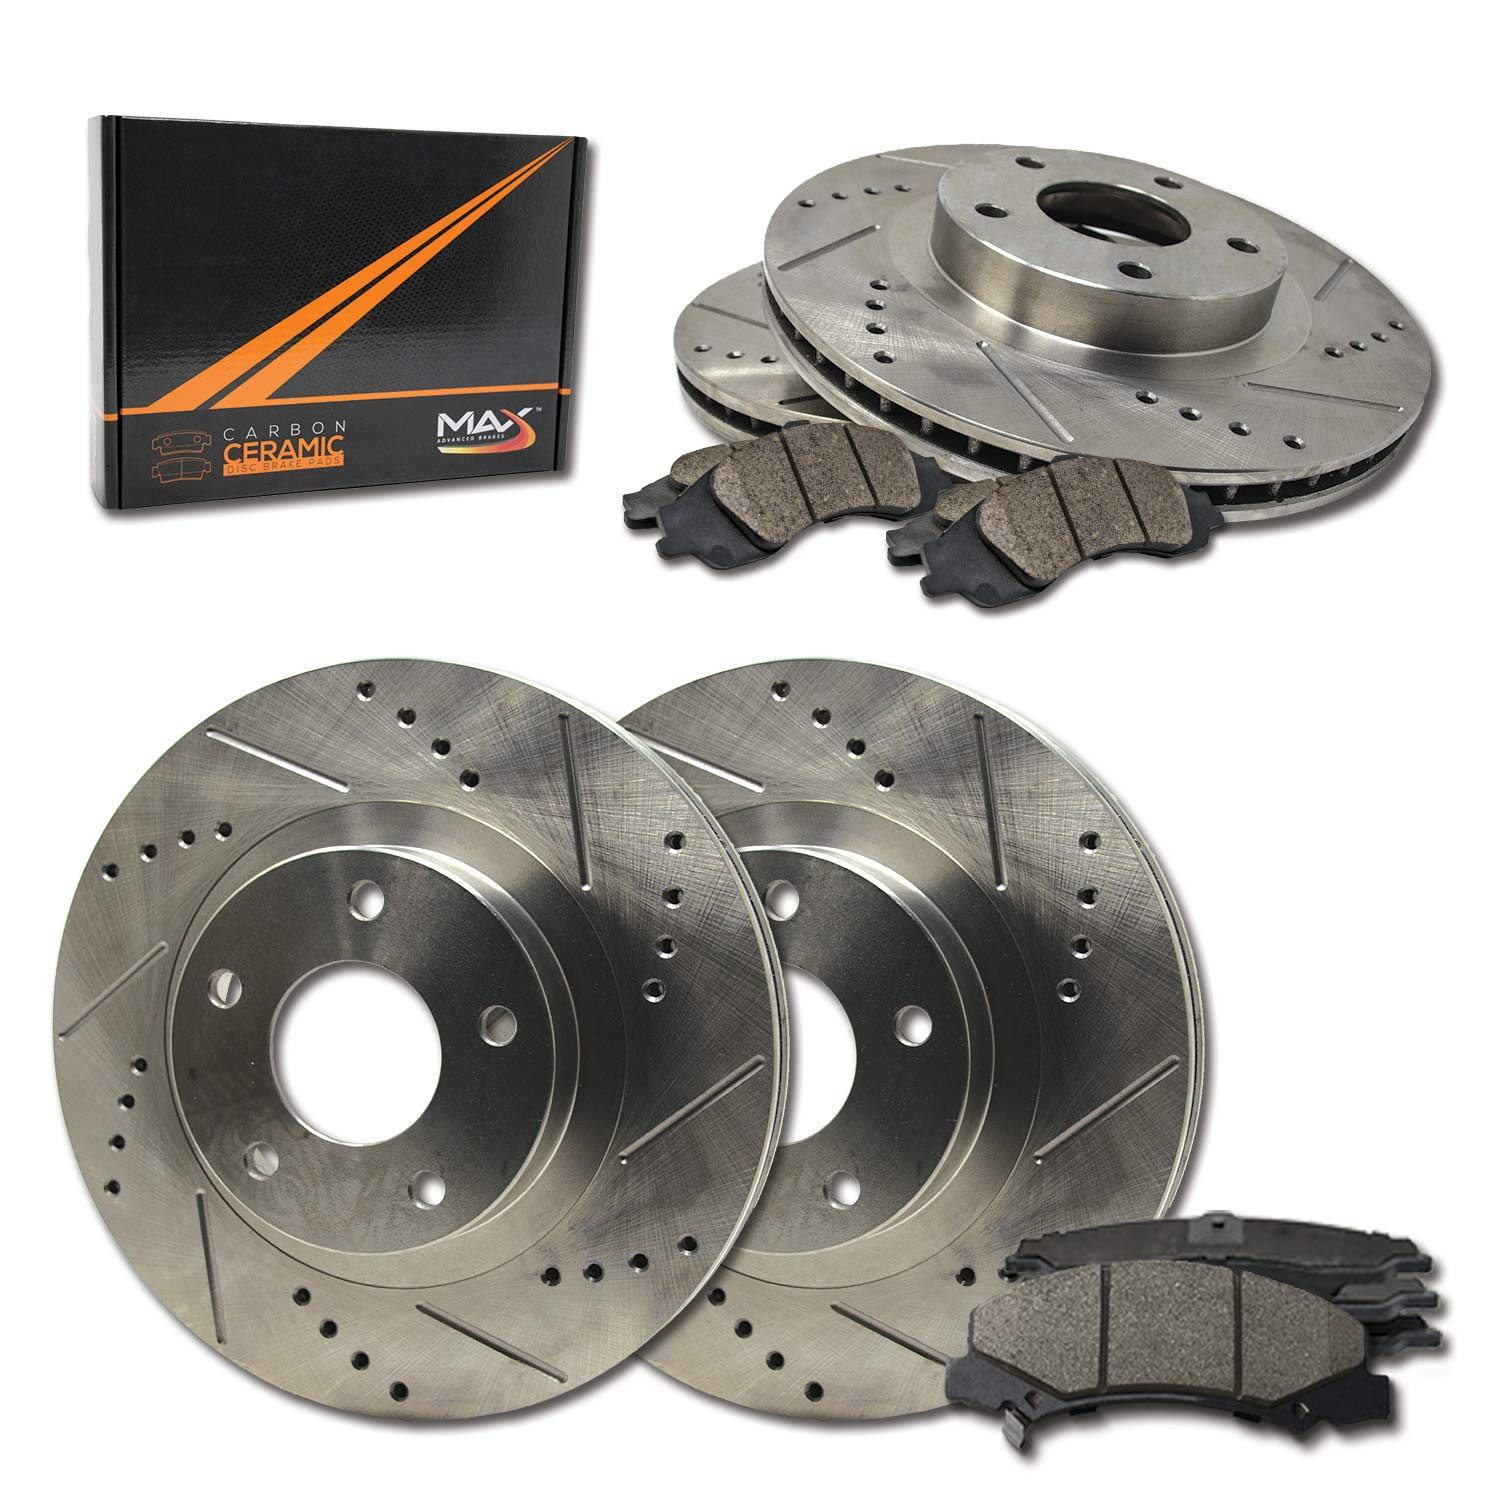 Max Brakes Front & Rear Performance Brake Kit [ Premium Slotted Drilled Rotors + Ceramic Pads ] KT052233 Fits: 2004-2008 Chrysler Pacifica by LAUNCH